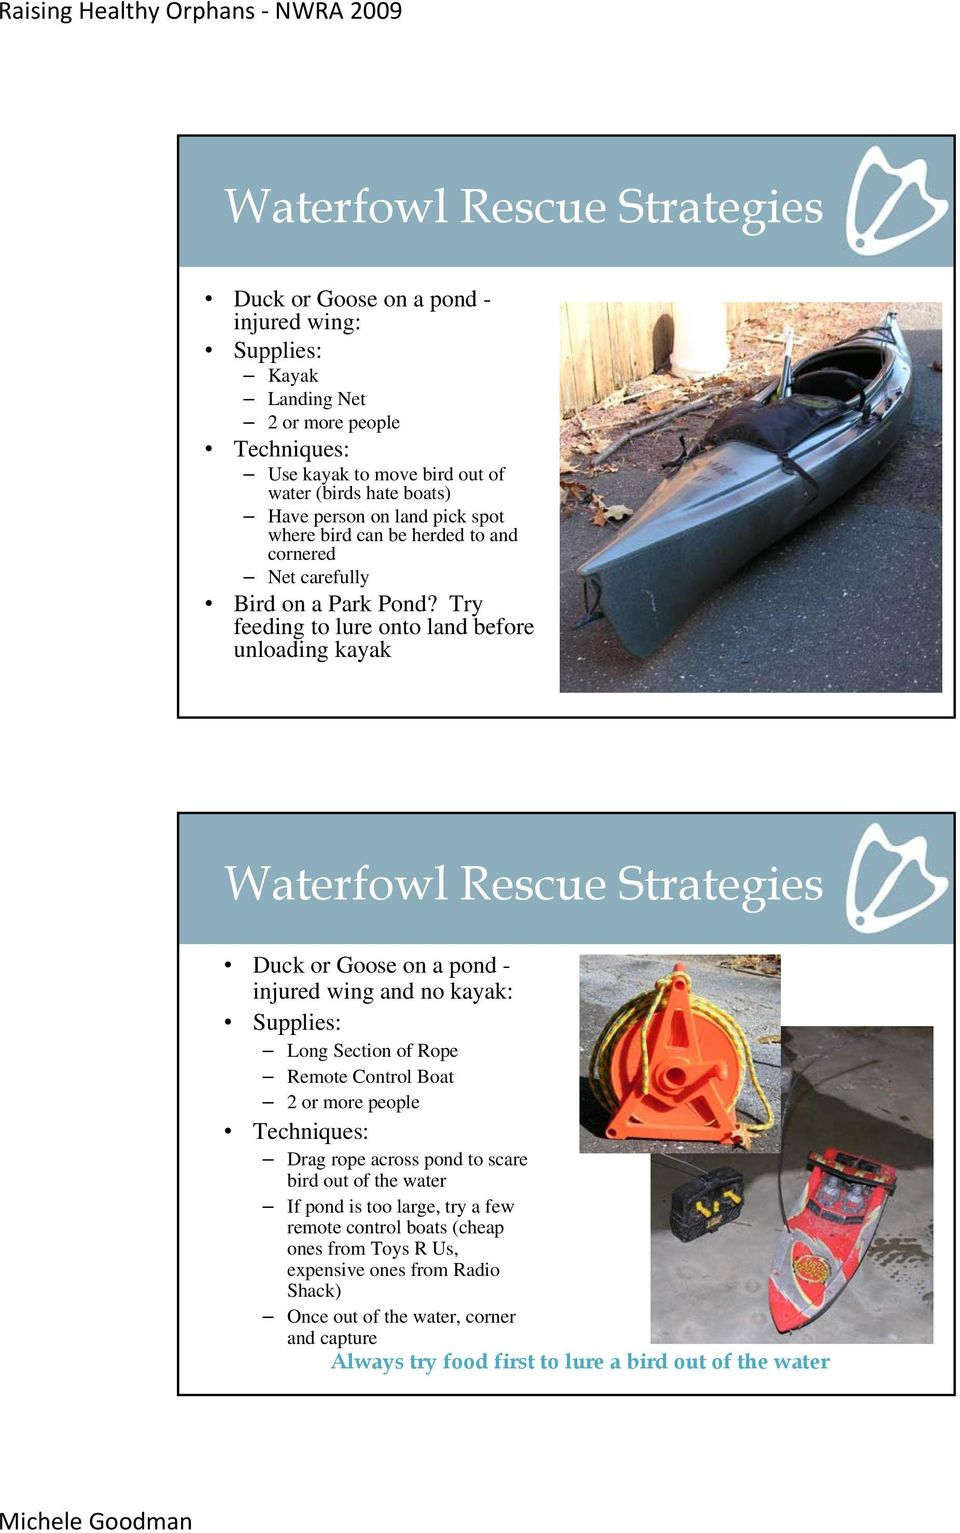 Try feeding to lure onto land before unloading kayak Waterfowl Rescue Strategies Duck or Goose on a pond - injured wing and no kayak: Supplies: Long Section of Rope Remote Control Boat 2 or